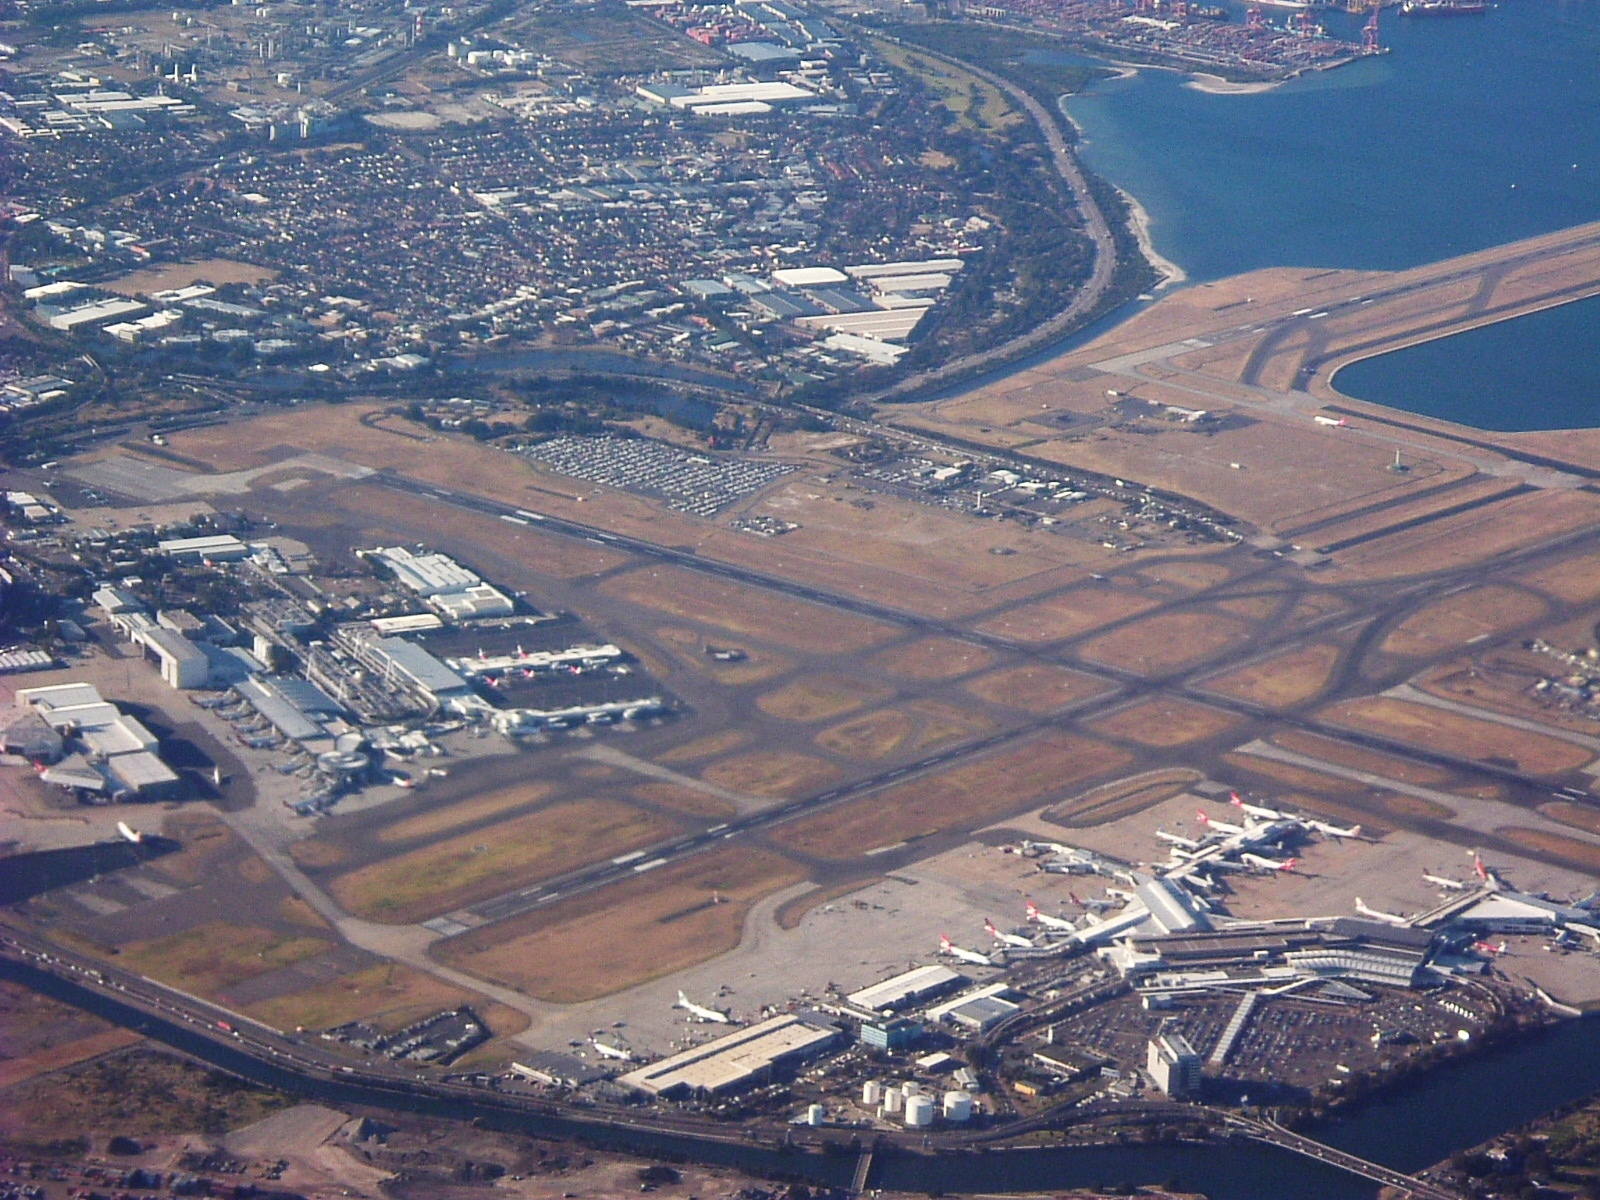 Charles Kingsford-Smith International Airport (Joan of What?)